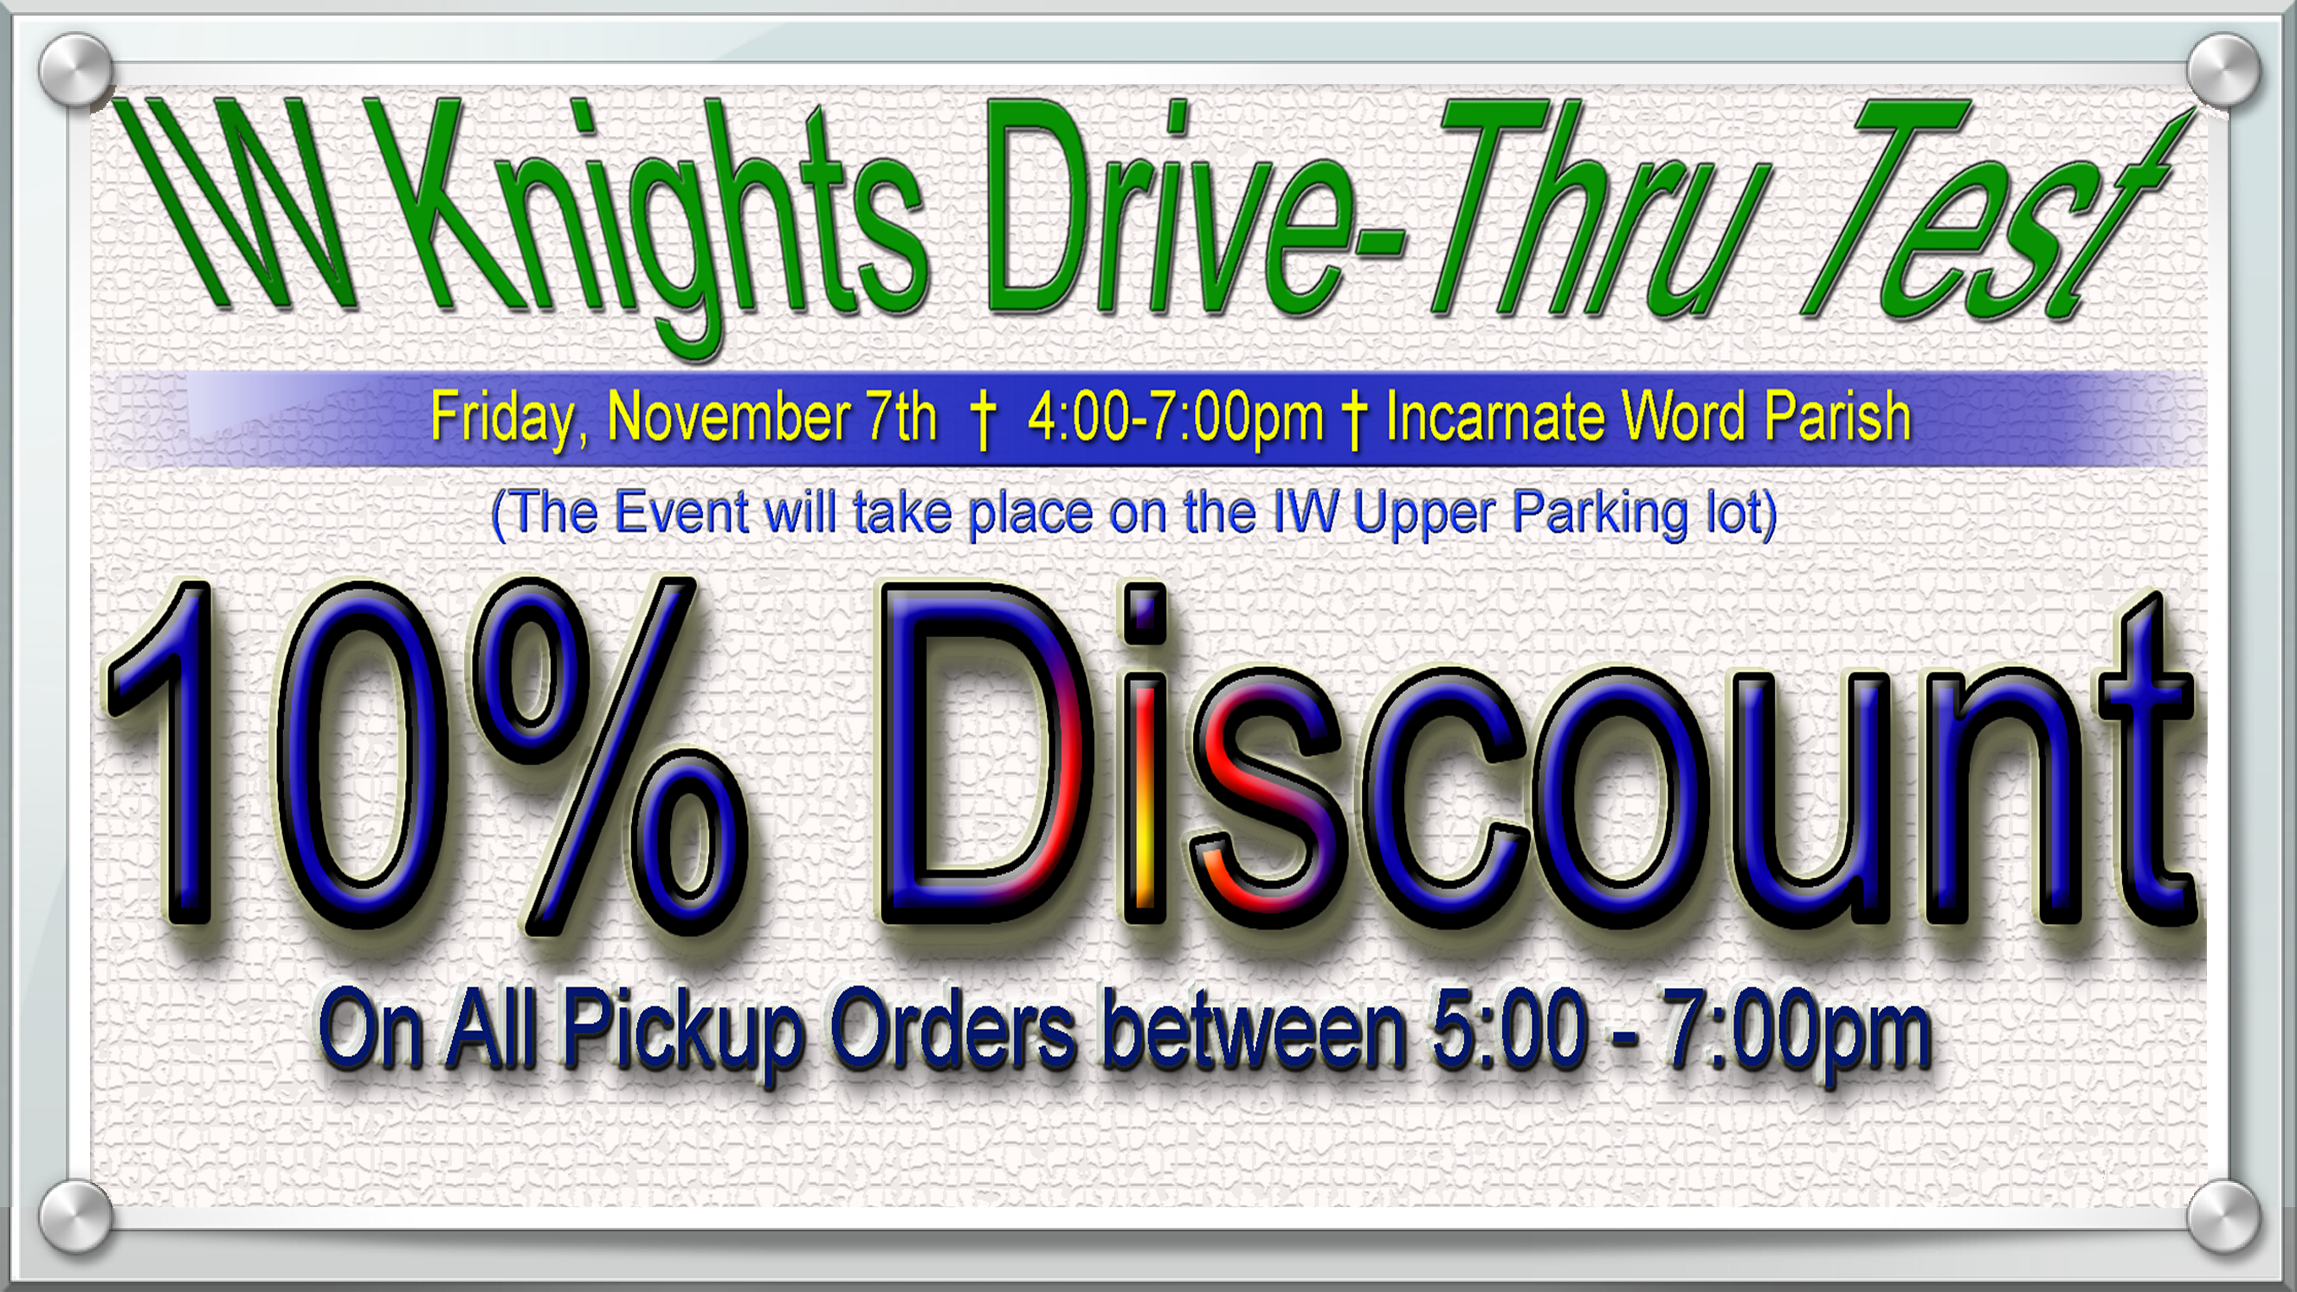 IWknights Drive-Thru Test Flyer - 10% Discount Image